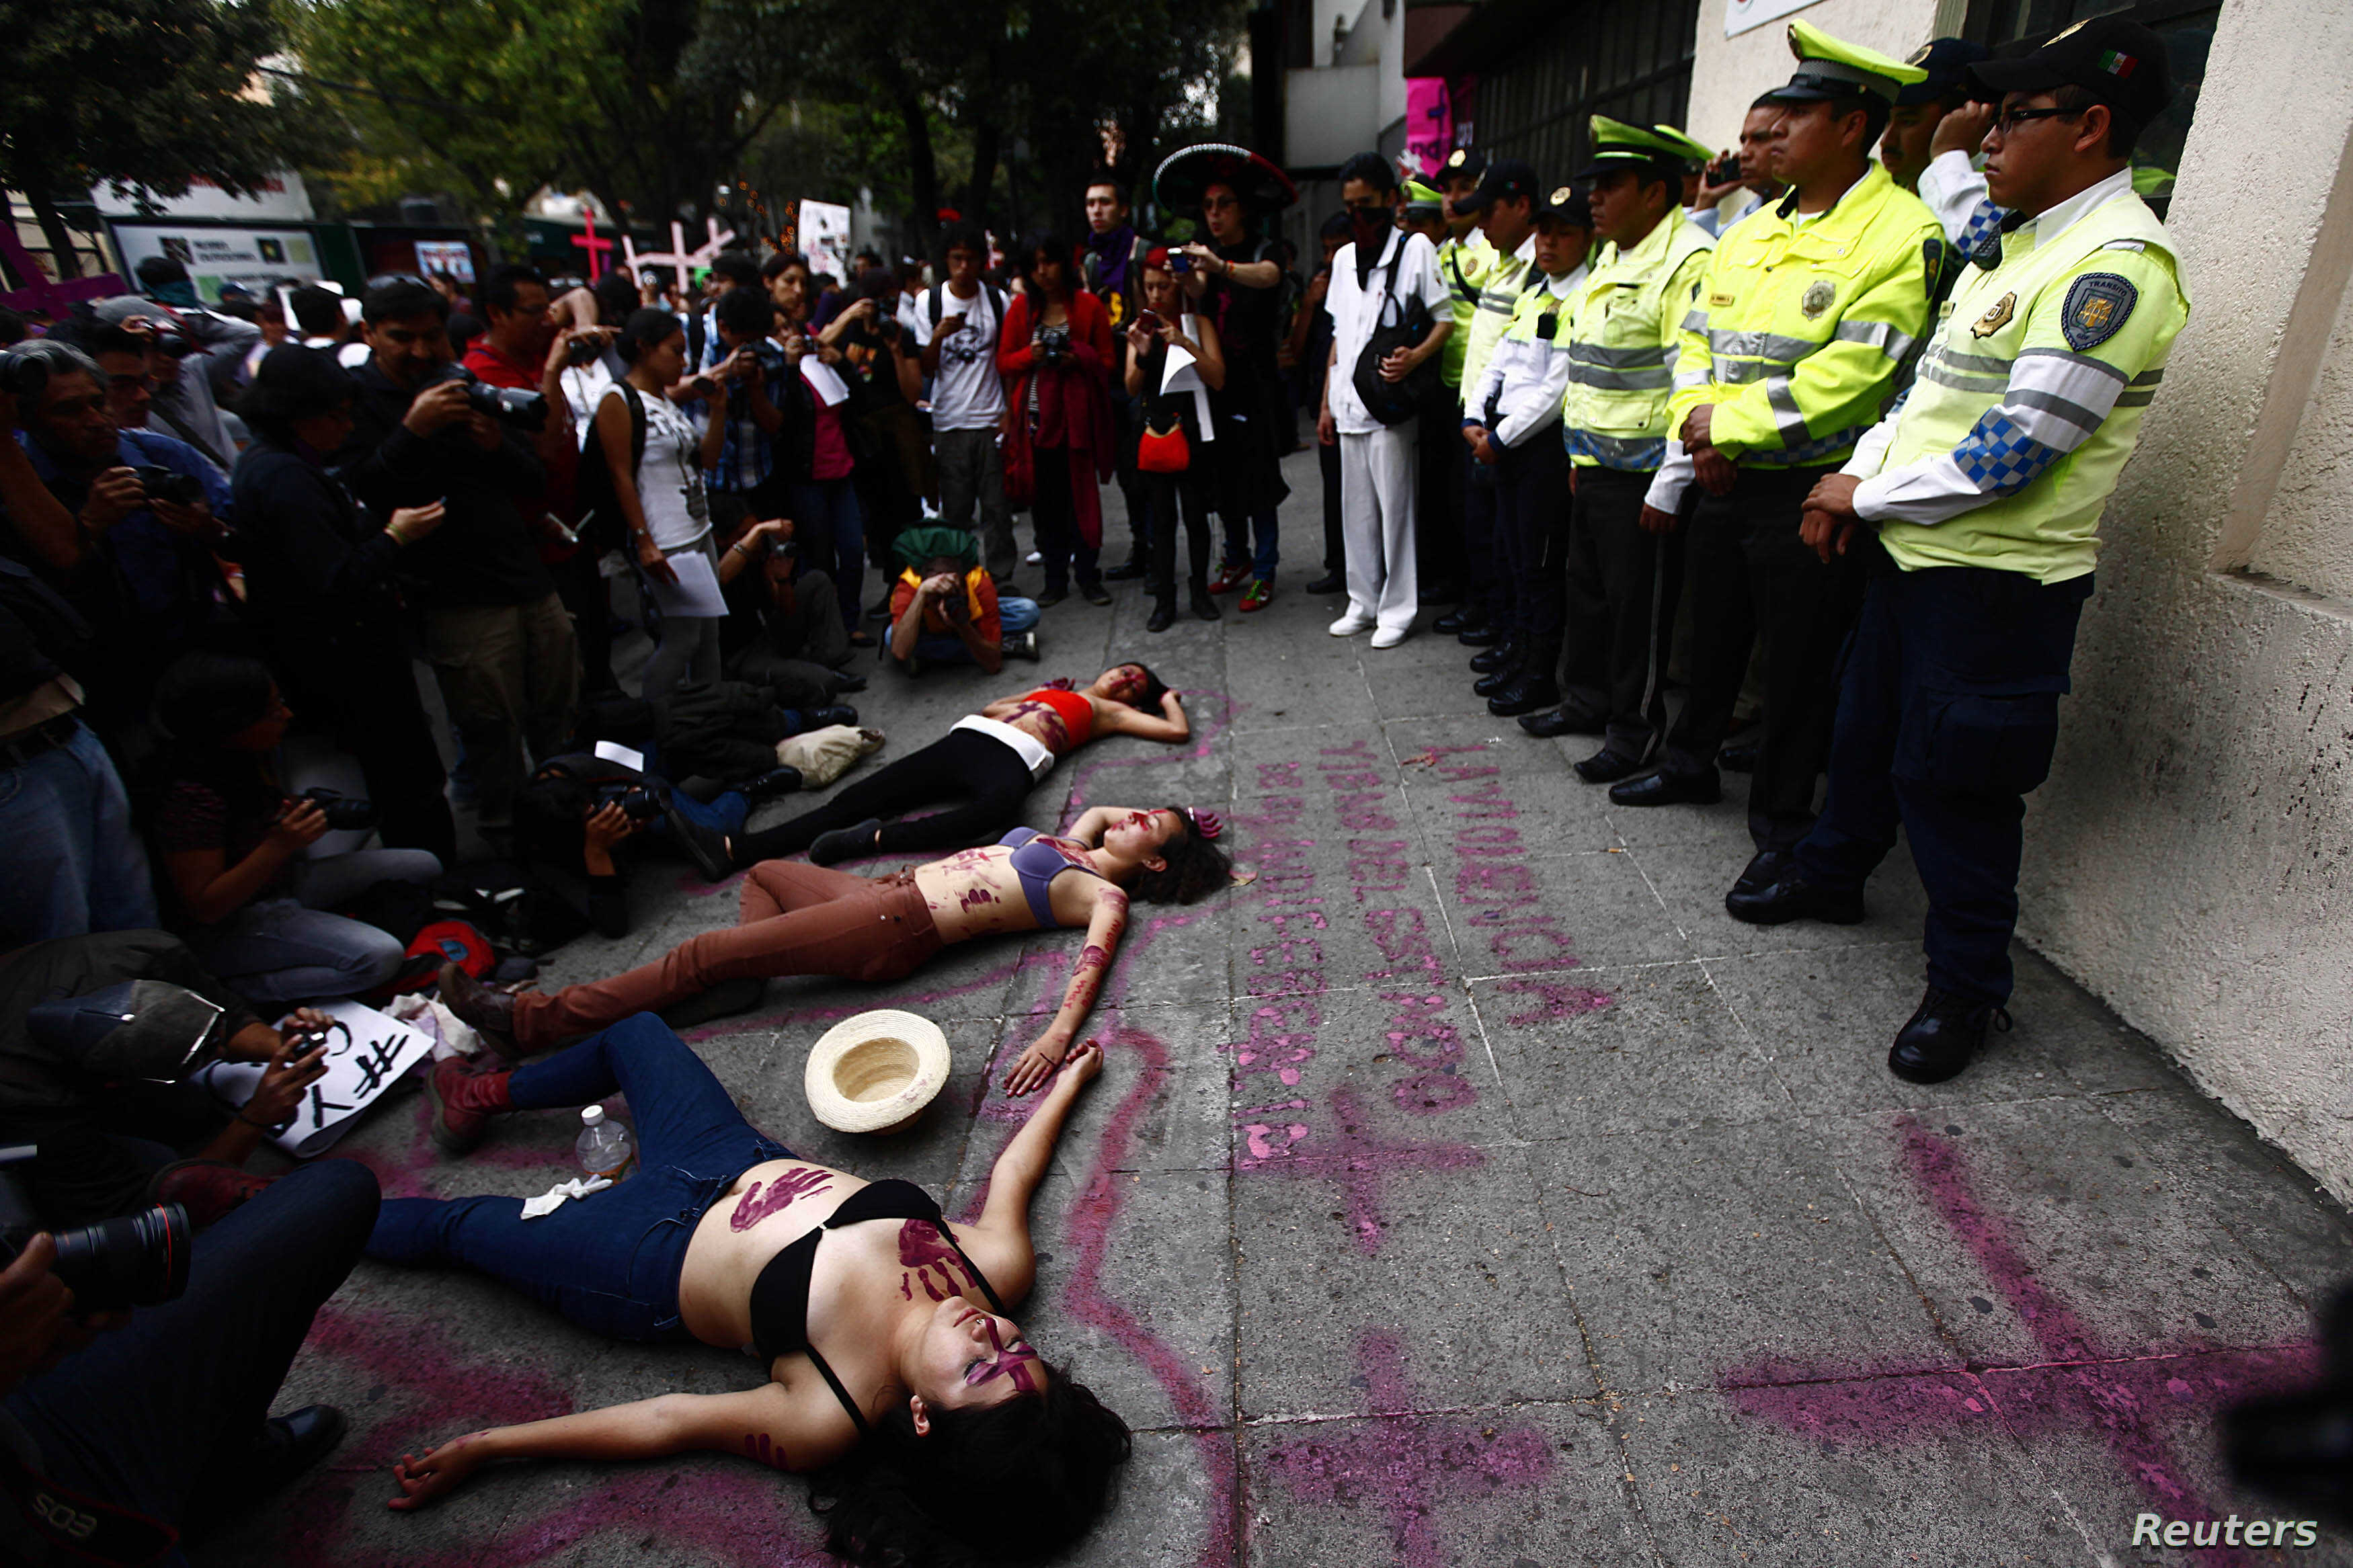 Women lie on the ground during a performance in front of traffic police officers on the sidelines of a demonstration to demand justice for women who are the victims of violence, in Mexico City March 8, 2013. Activists and relatives of women who were ...